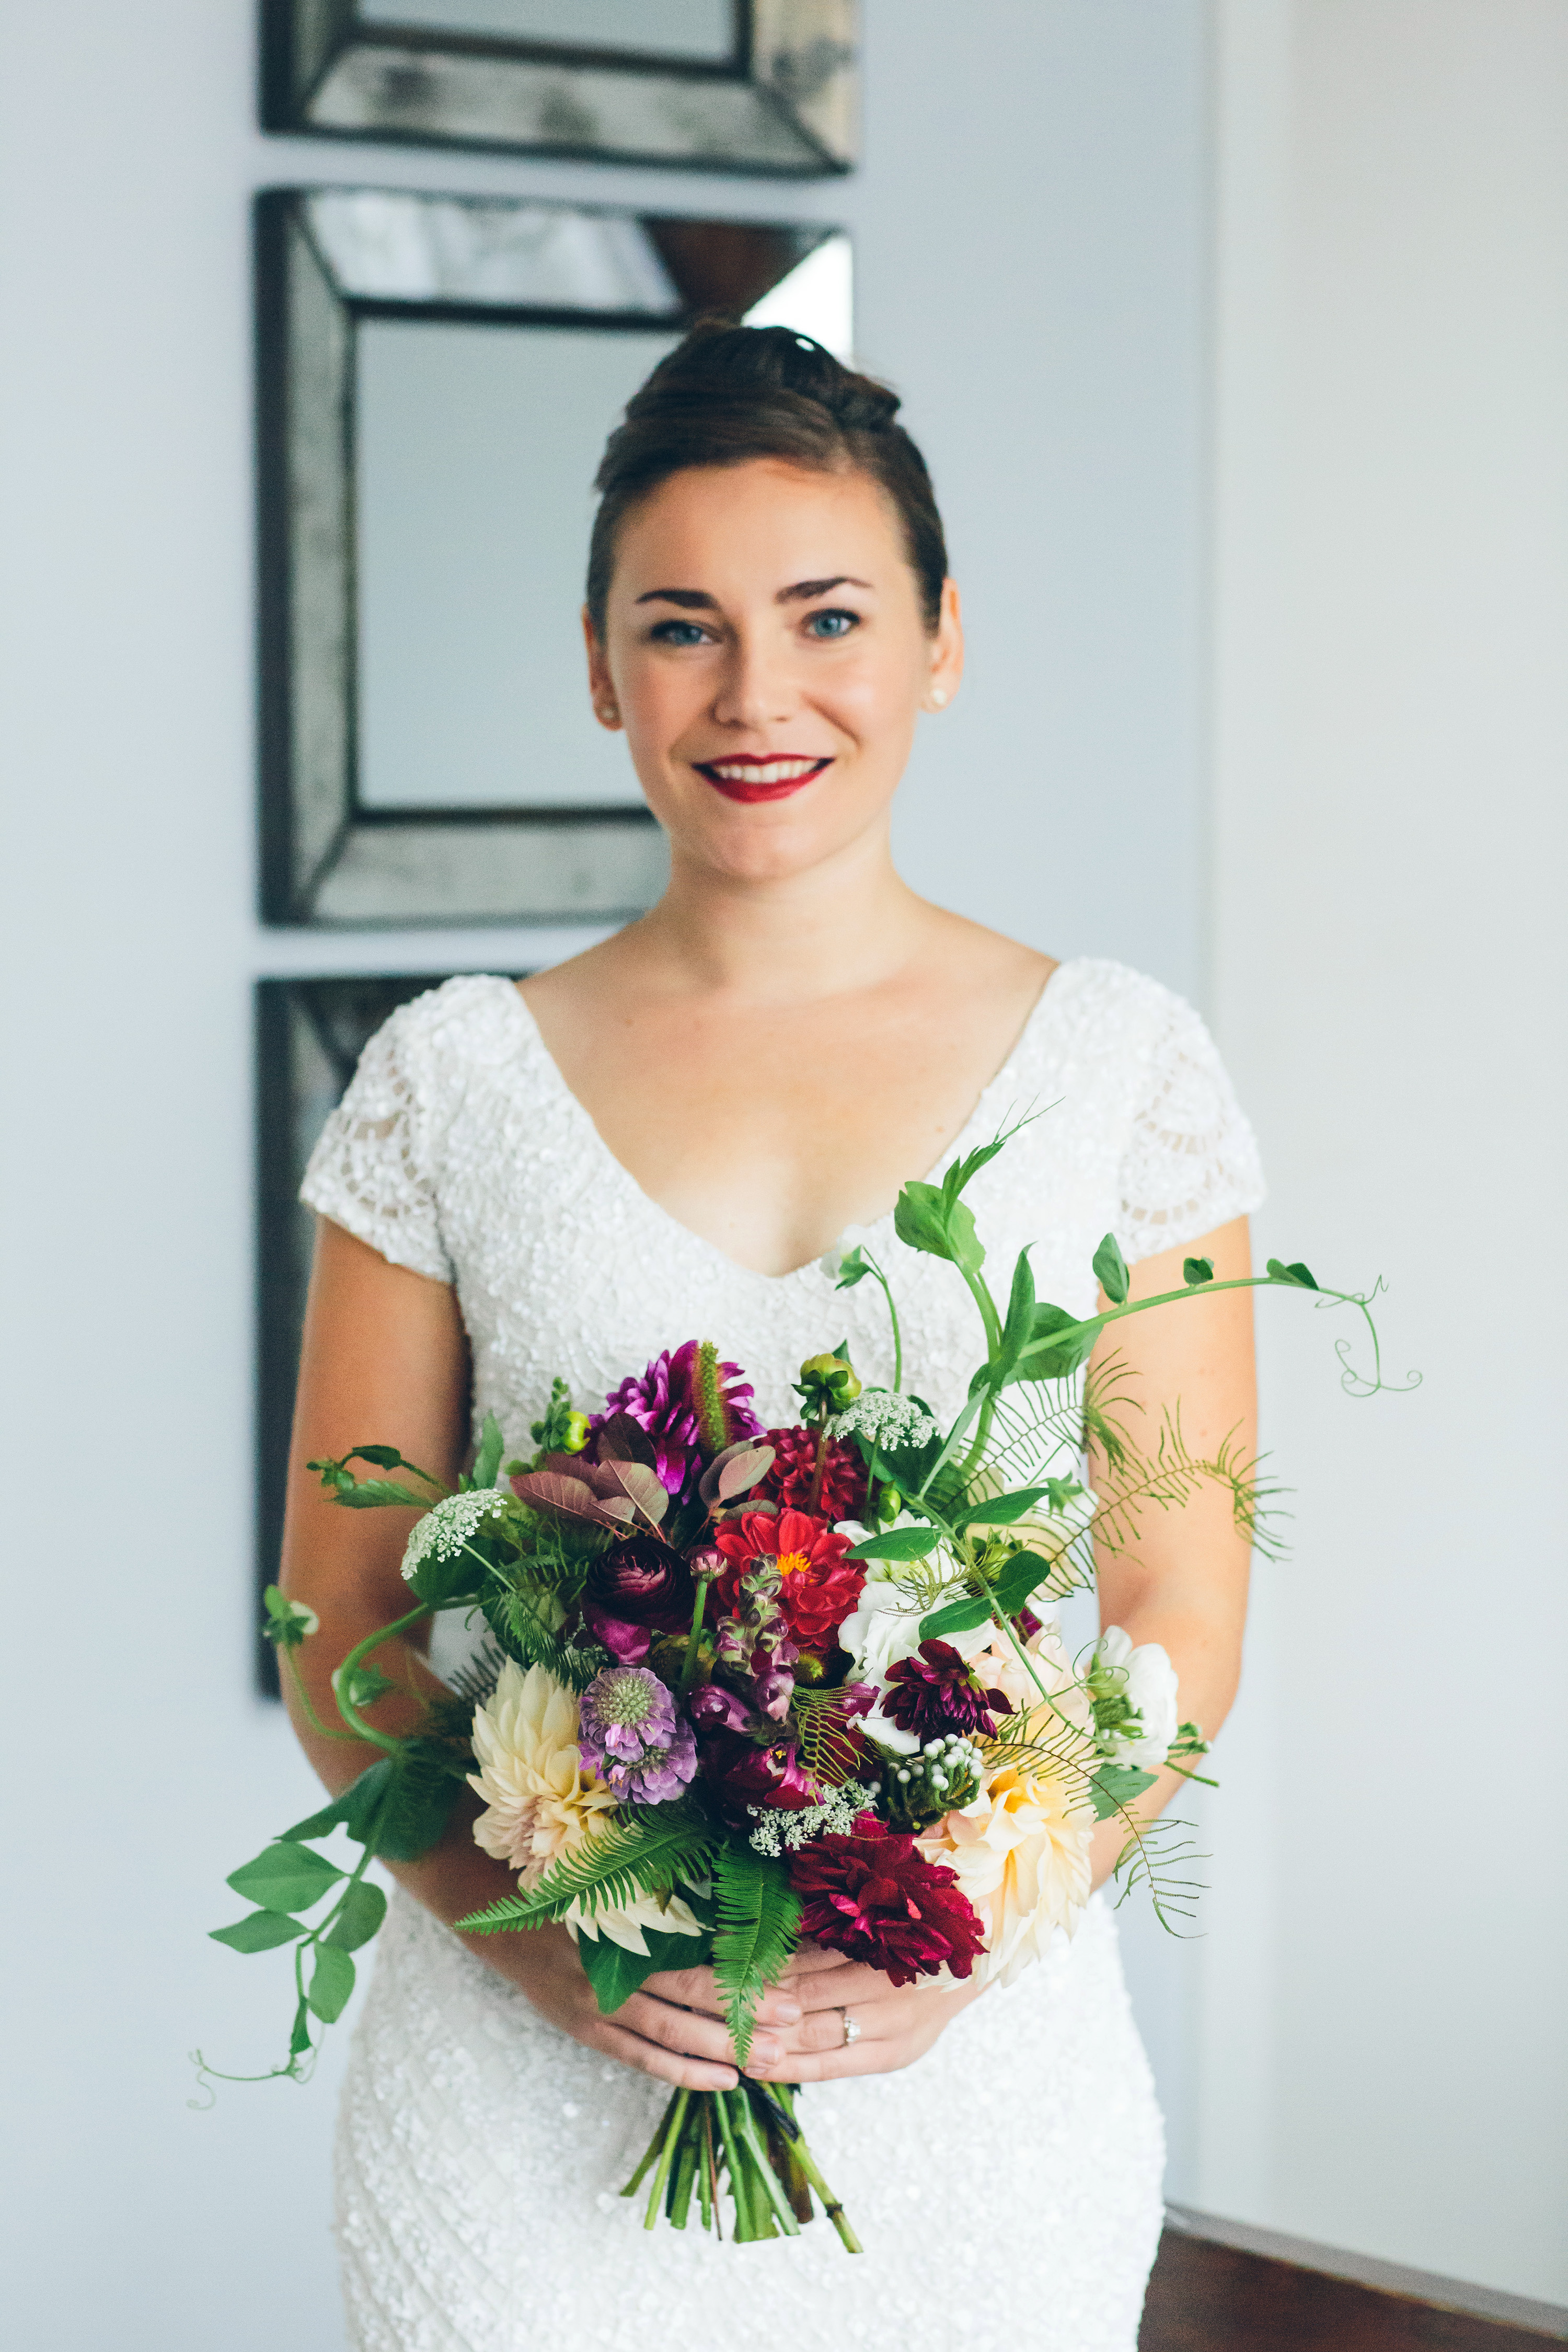 bold lipstick bride with colorful bouquet